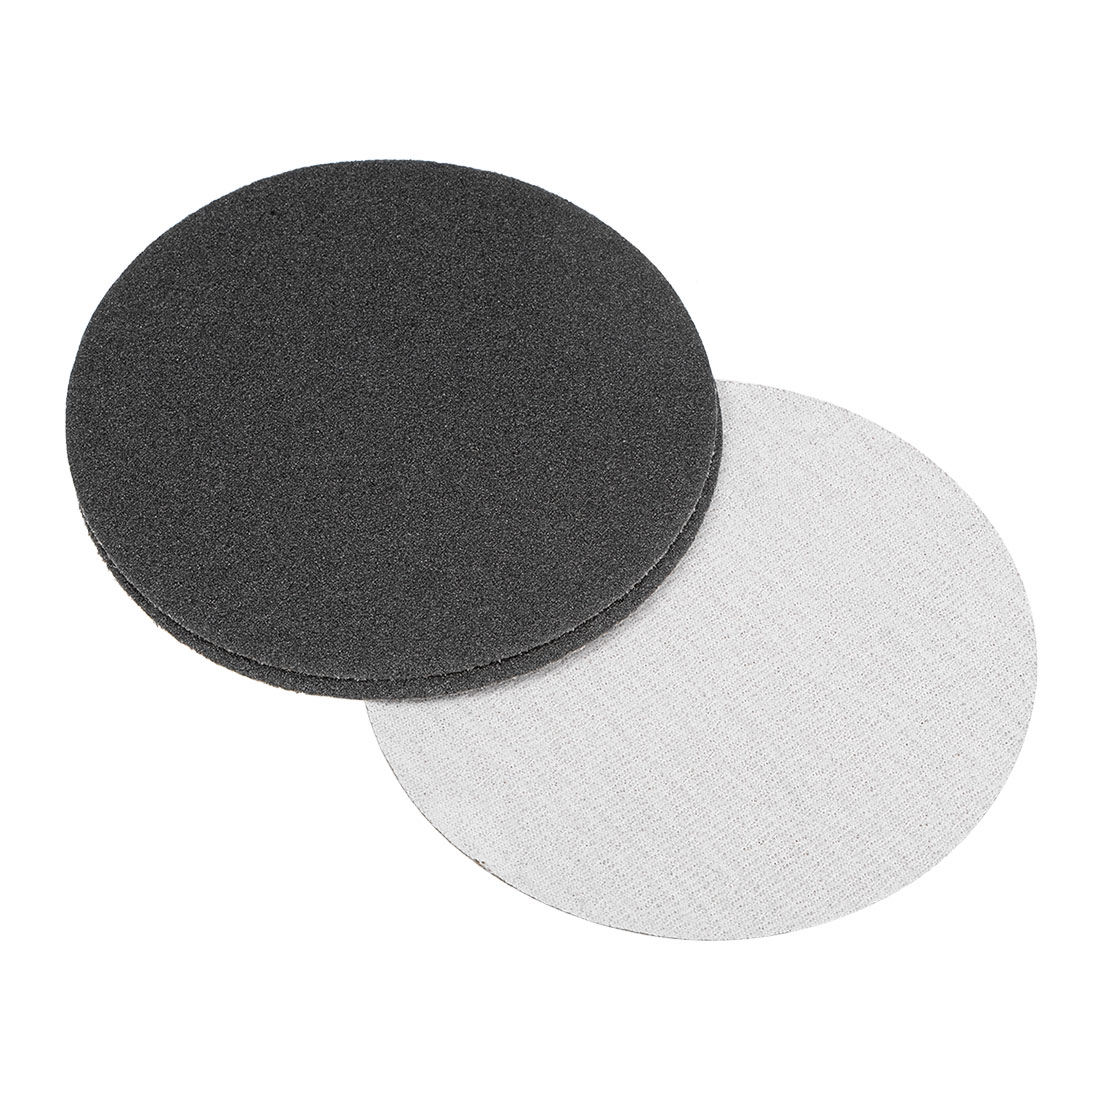 5 inch Wet Dry Discs 80 Grit Hook and Loop Sanding Disc Silicon Carbide 3pcs